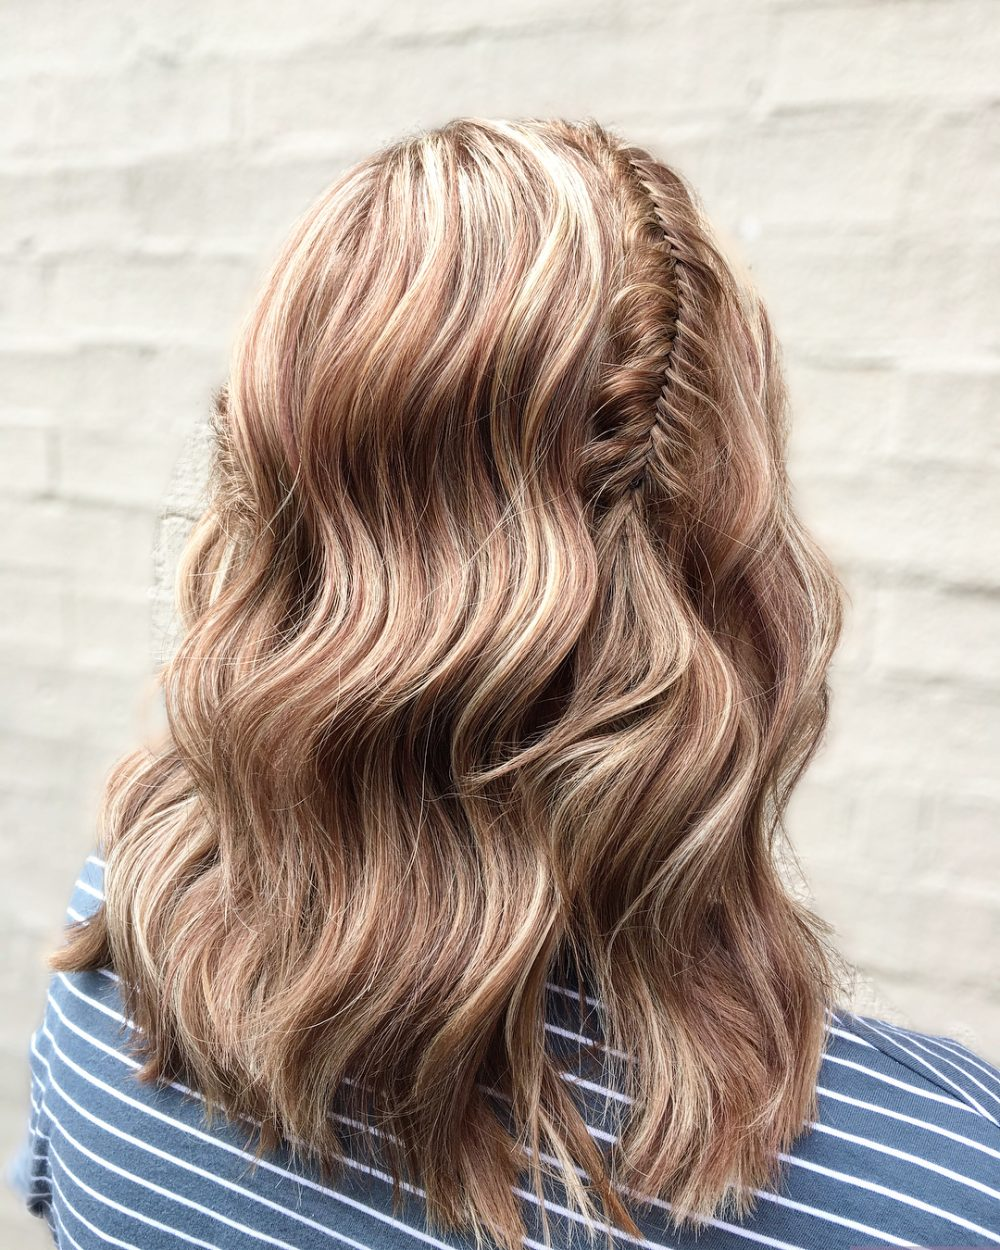 Hair For Medium Length and trendy hair color